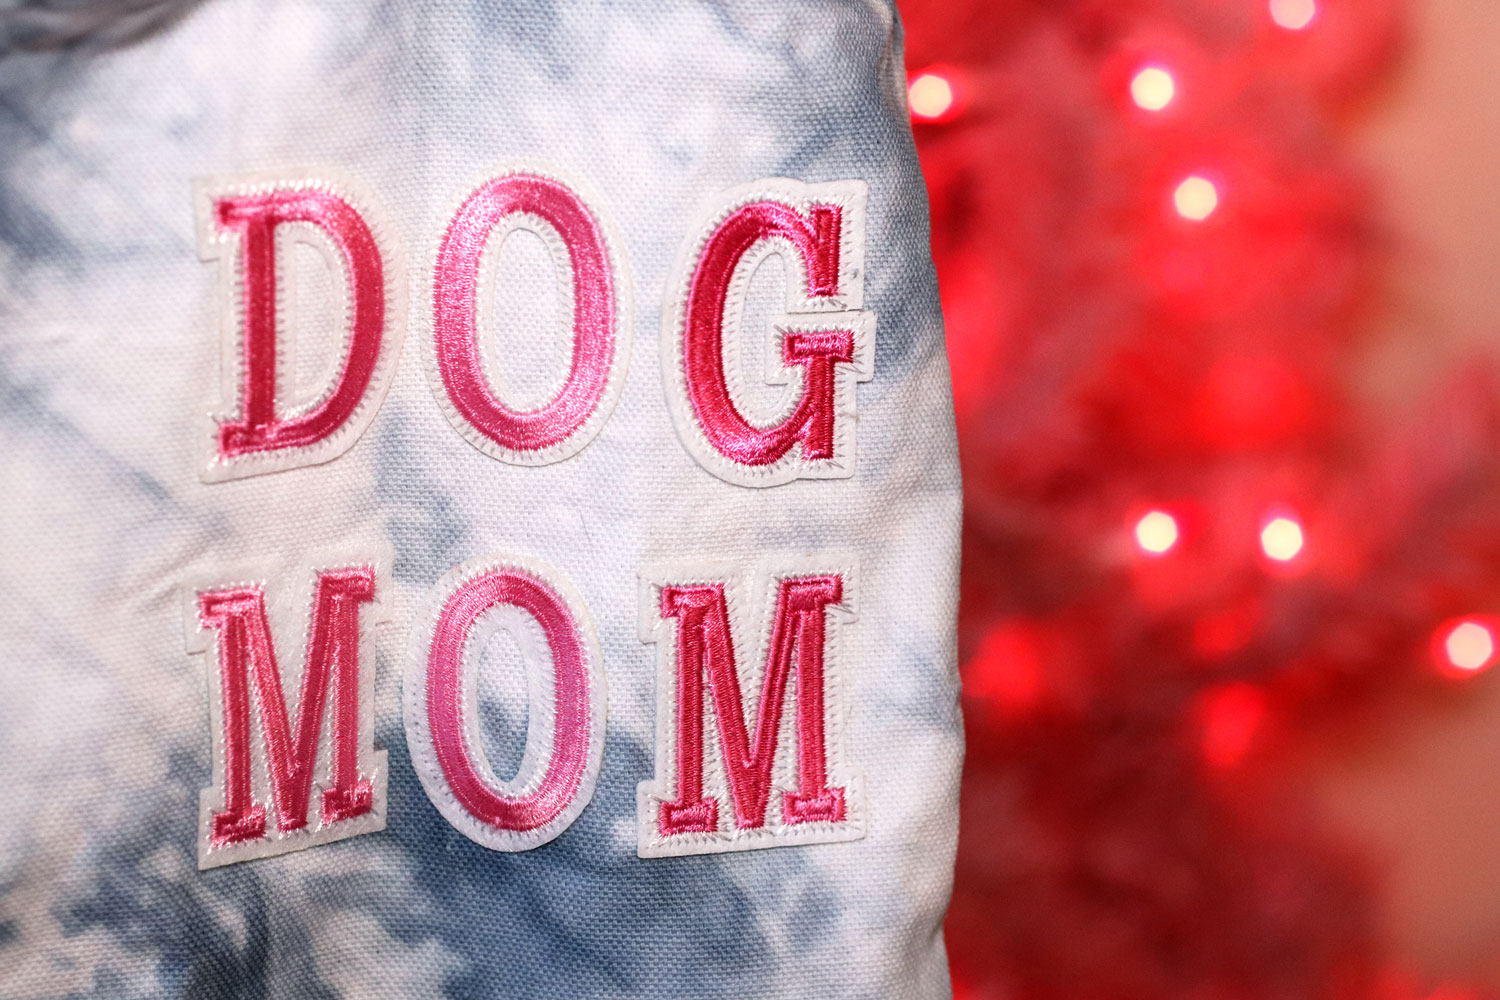 Woman Owned Holiday Gift Guide 2019 - BFFs & Babes Dog Mom Tie Dye Tote Bag